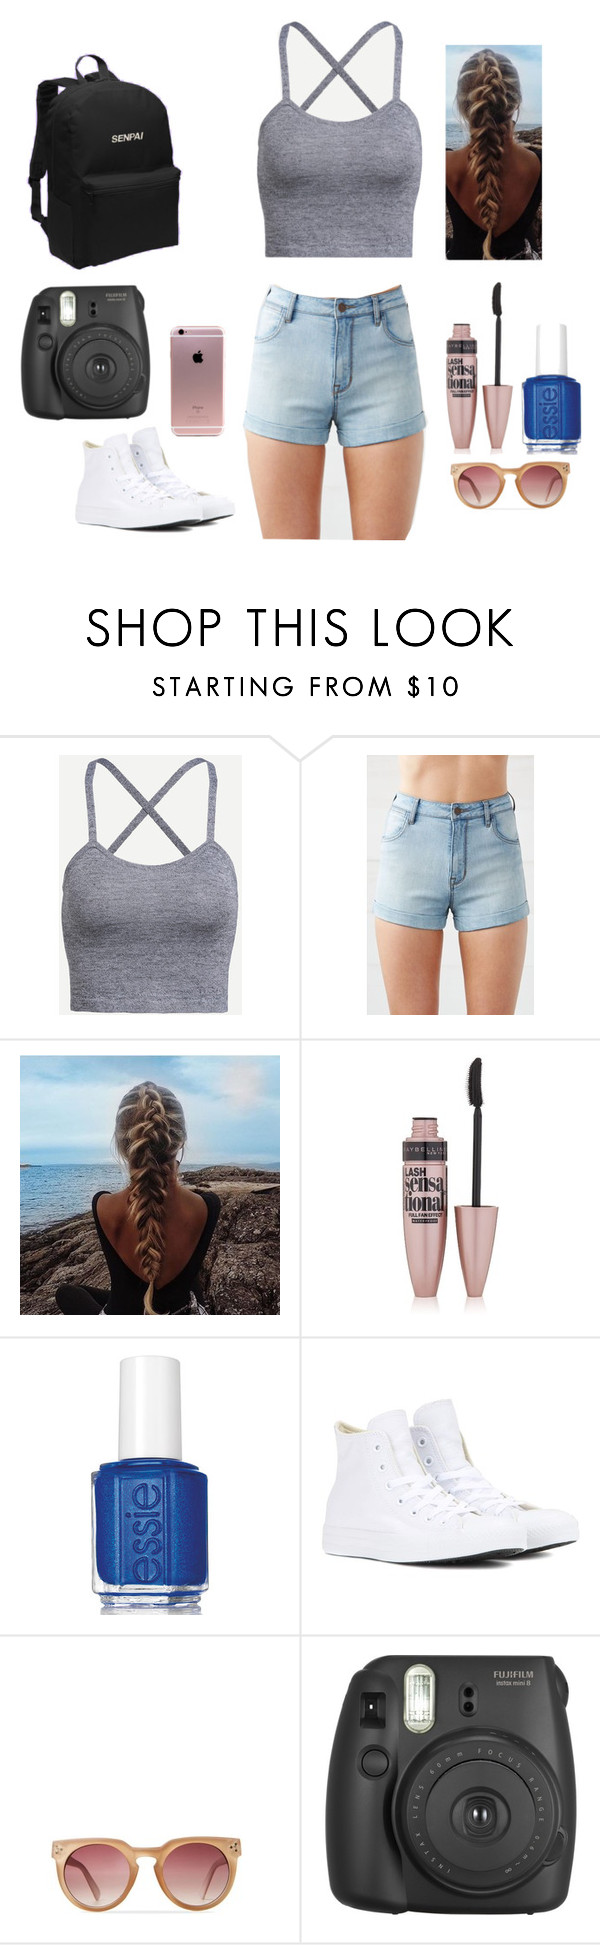 """""""I'm just going to go edit on the beach...."""" by clairezoo ❤ liked on Polyvore featuring beauty, Kendall + Kylie, Maybelline, Essie and Converse"""